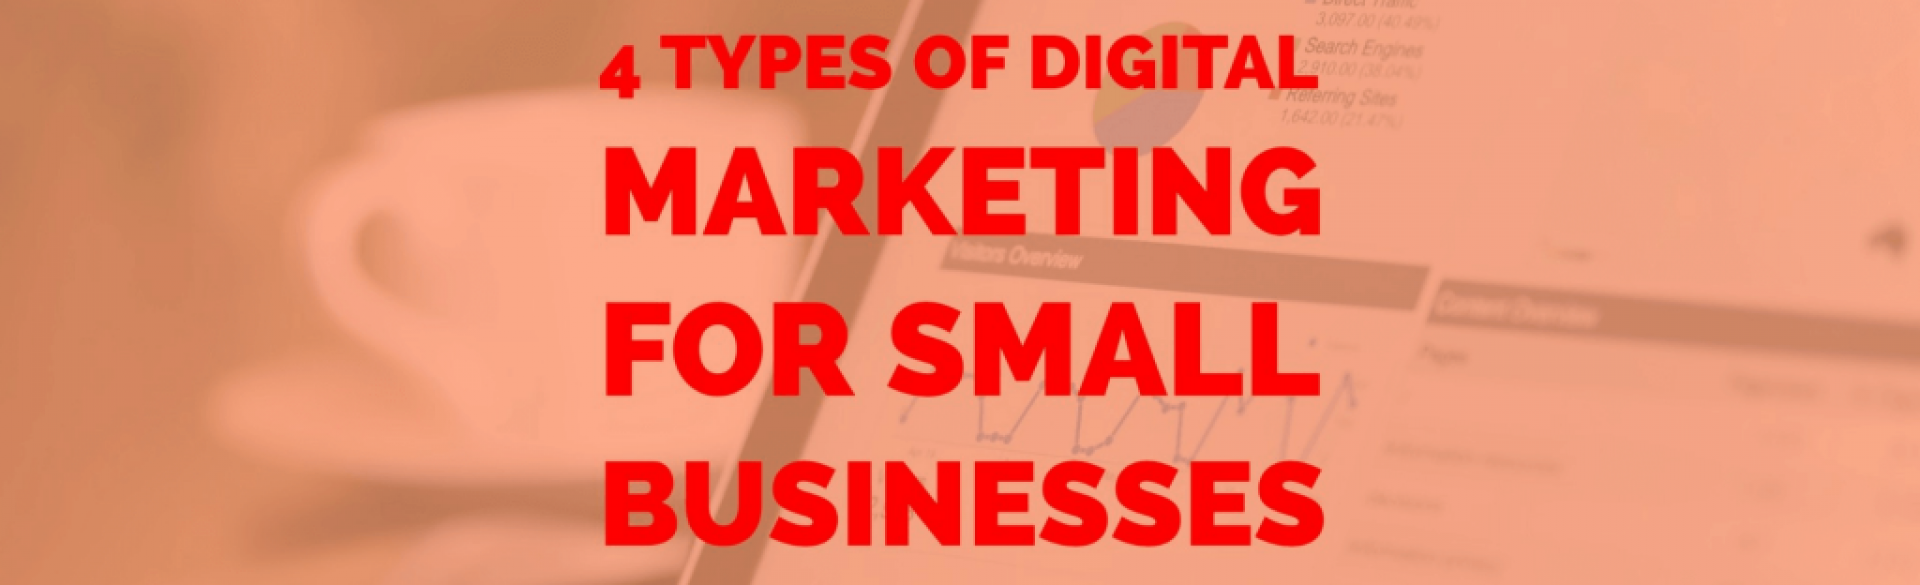 4 Types of Digital Marketing for Small Businesses